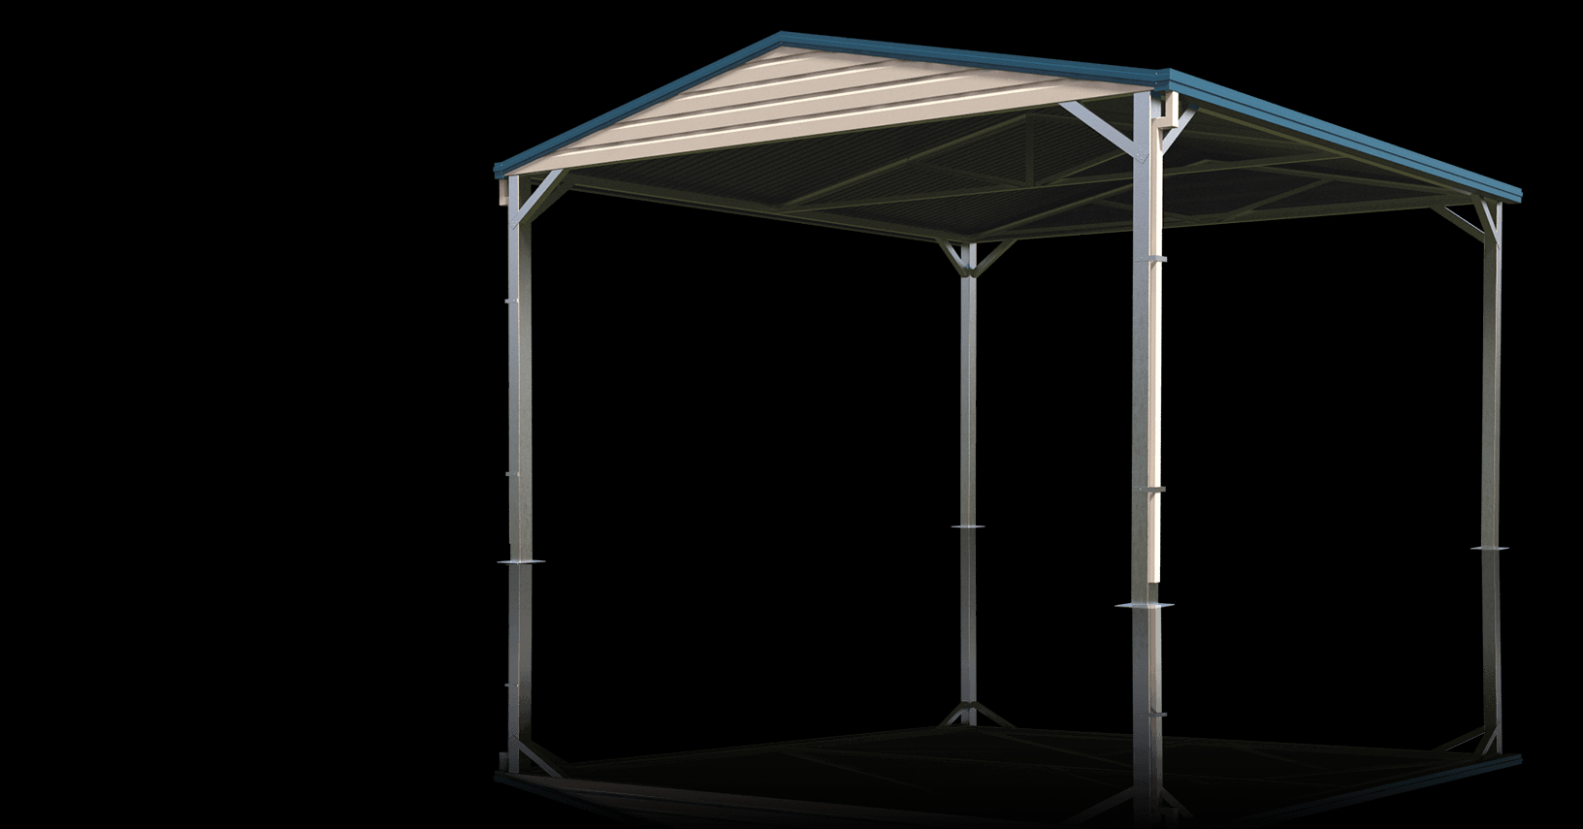 Sheds And Garages Guaranteed By Titan Garages & Sheds Flat Roof Carports Perth